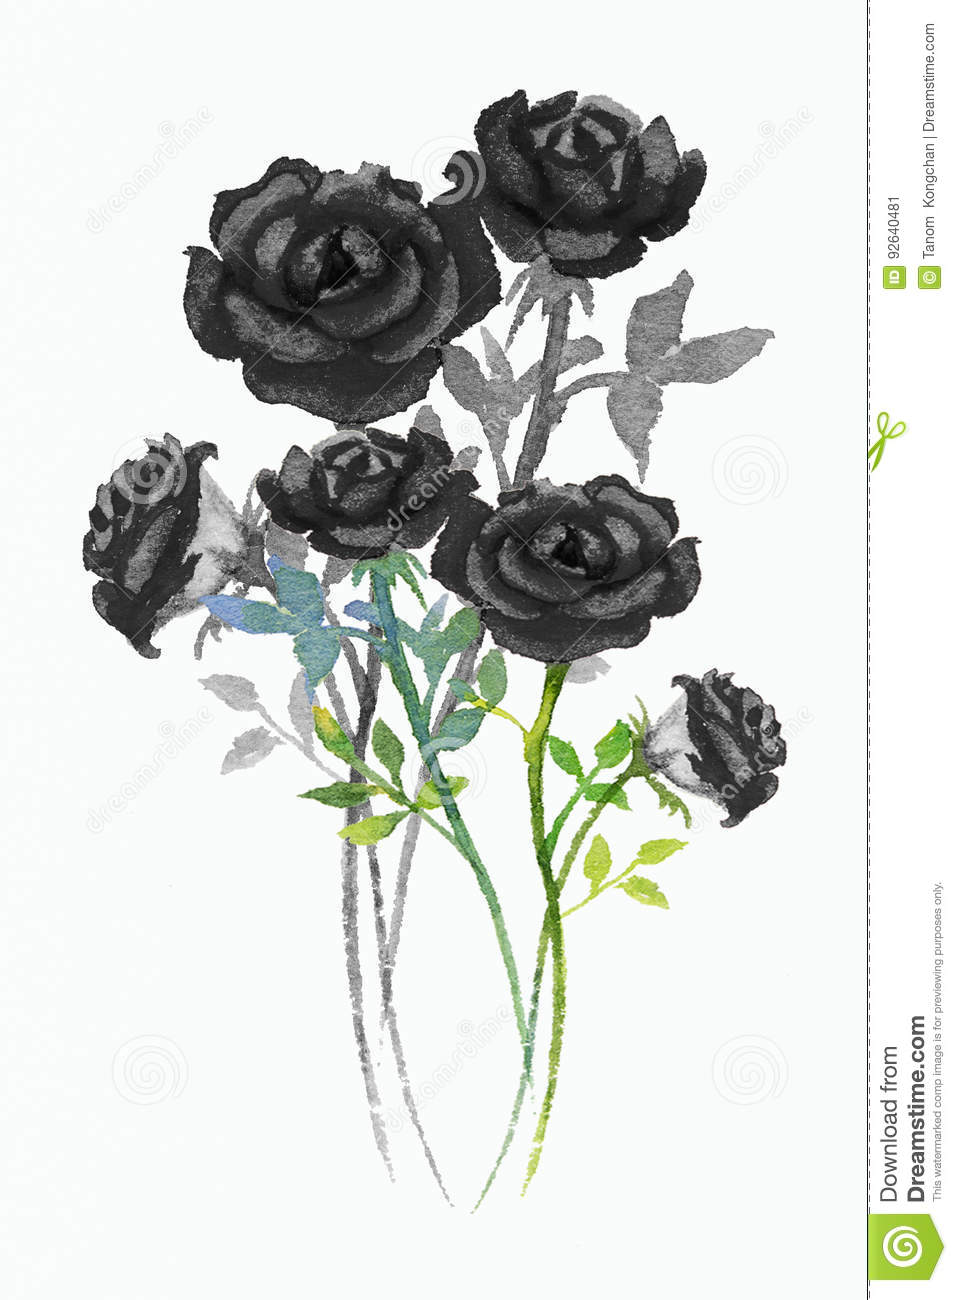 Painting Watercolor Black Flowers Of Roses Stock Illustration